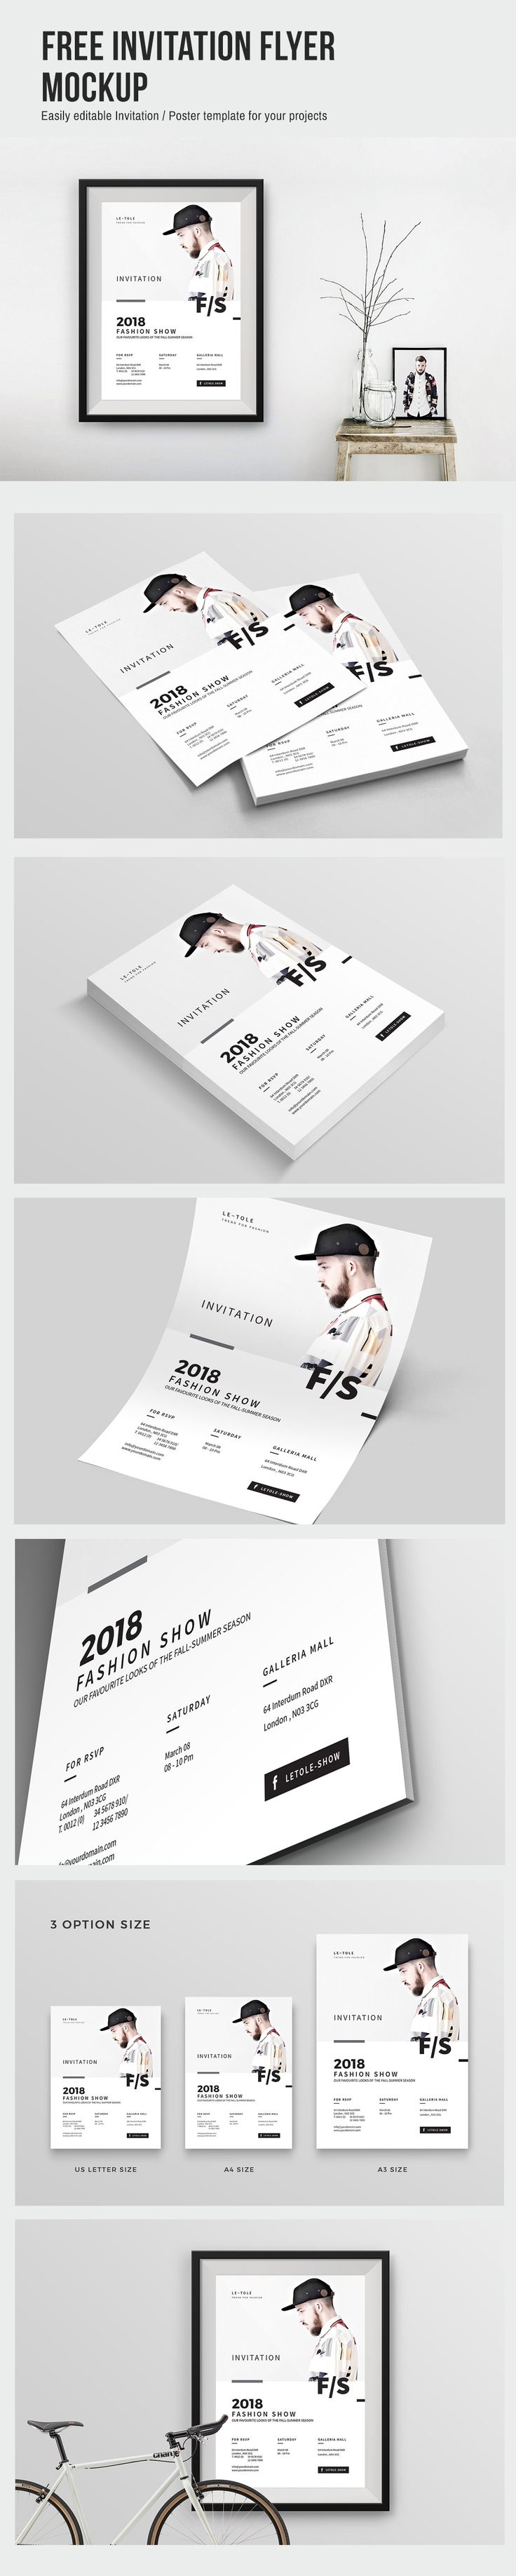 Invitation Flyer Mockup - Free Download | DezineMag